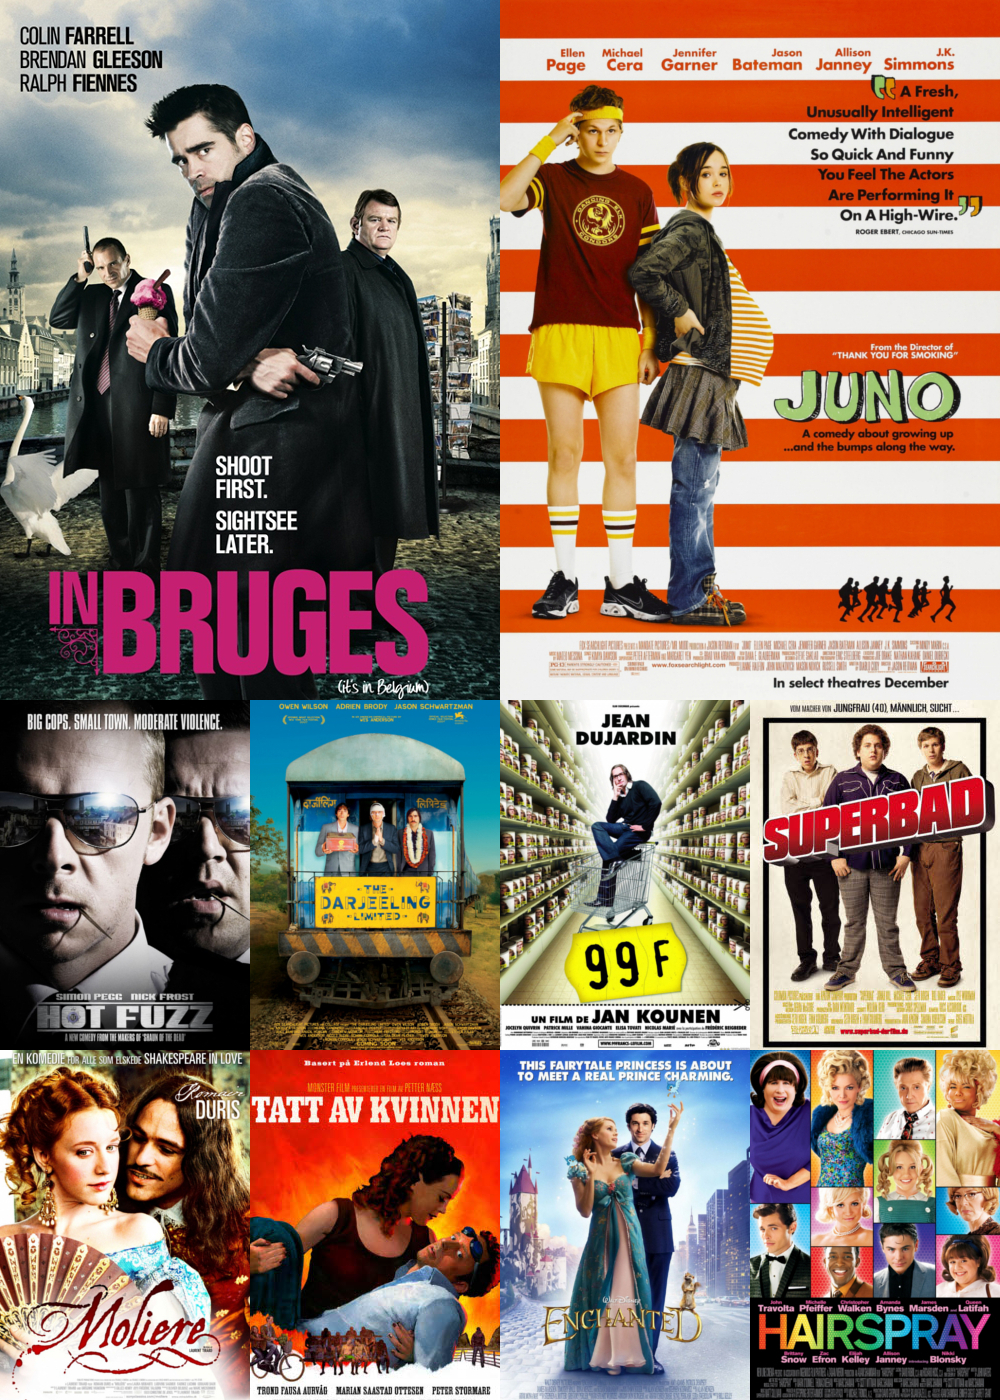 Top 10 Comedy Movies 2007